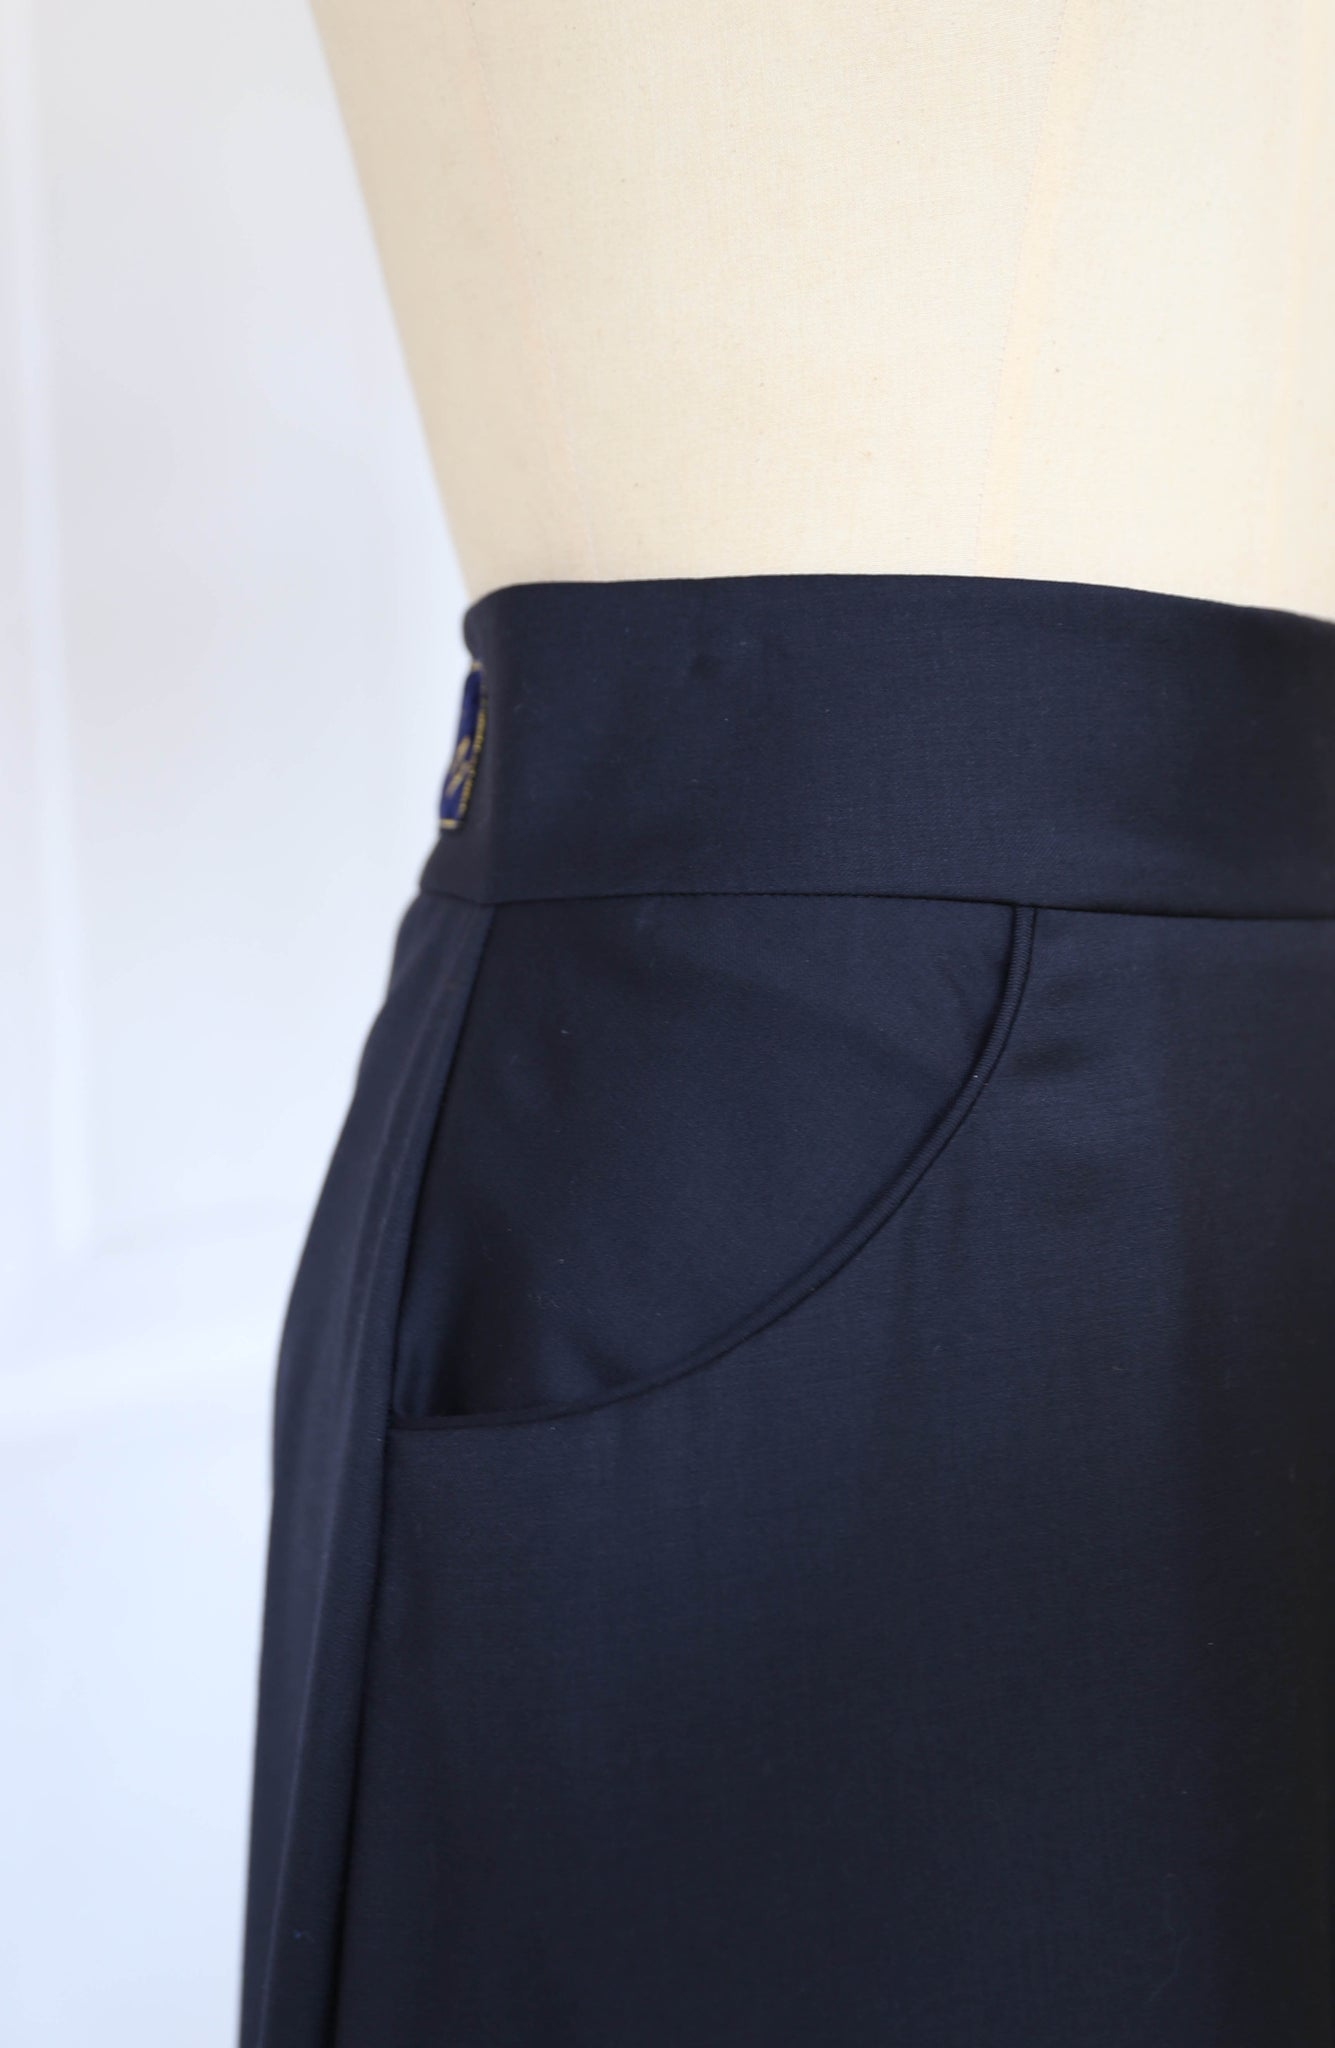 Countess Black Belle winter skirt SOLD OUT